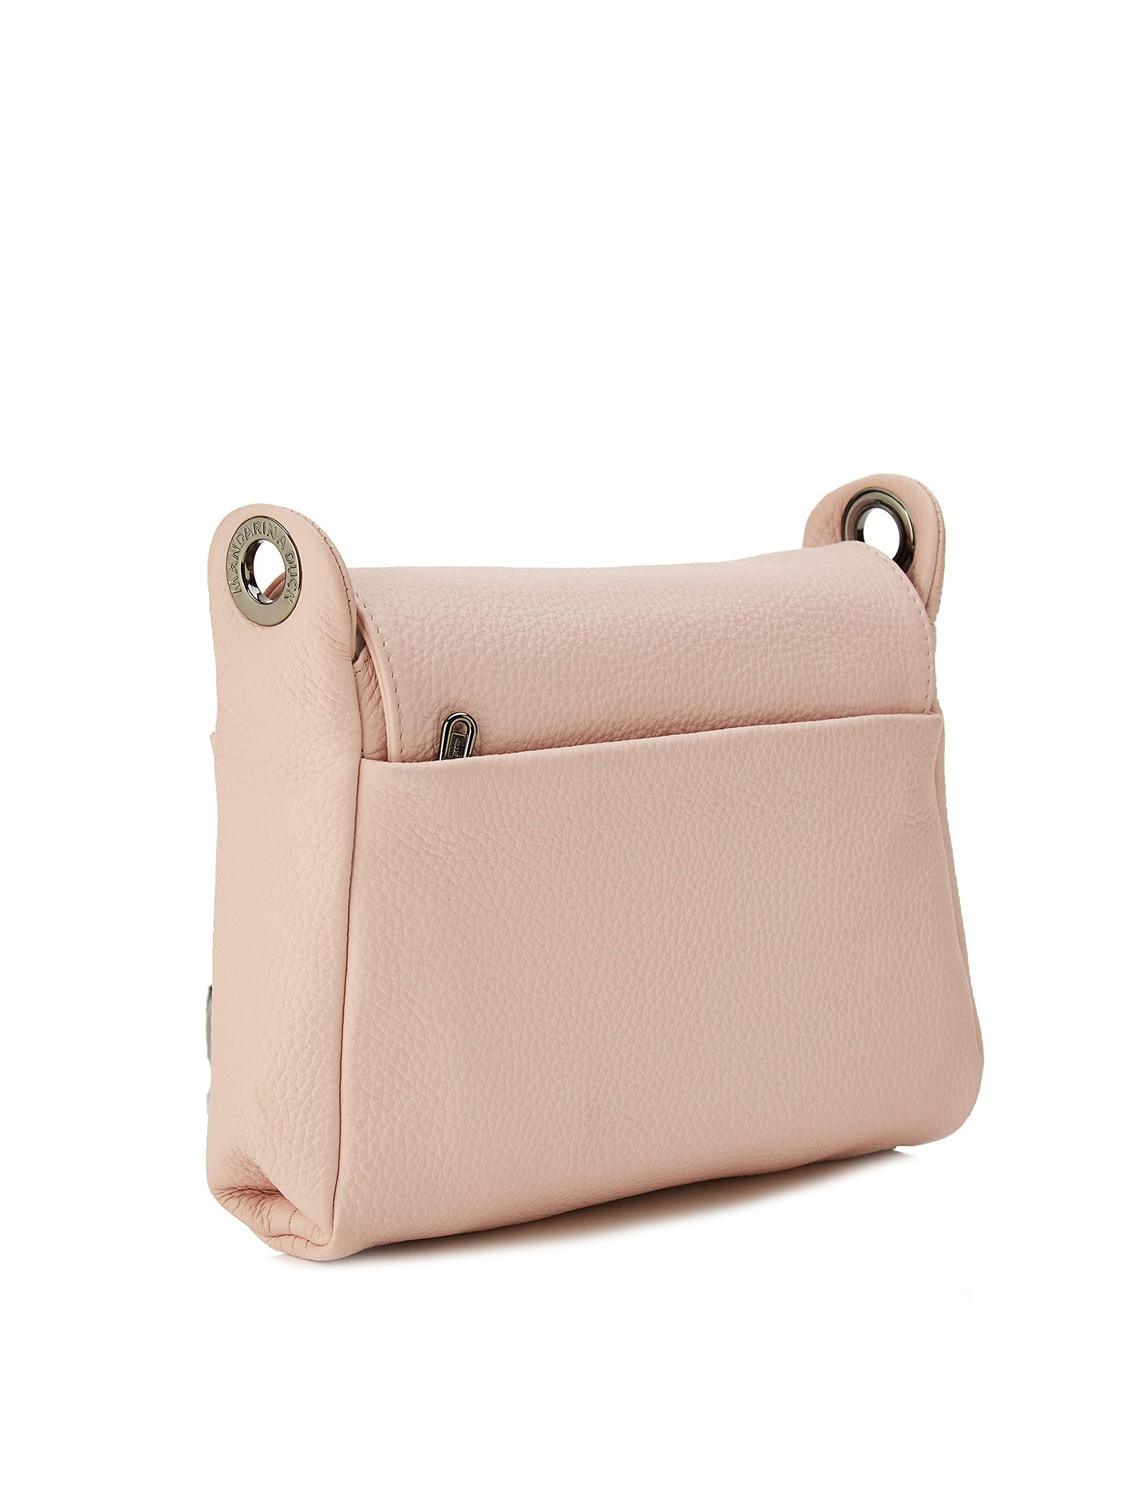 Women's Bags - Mellow Shoulder bag, in leather